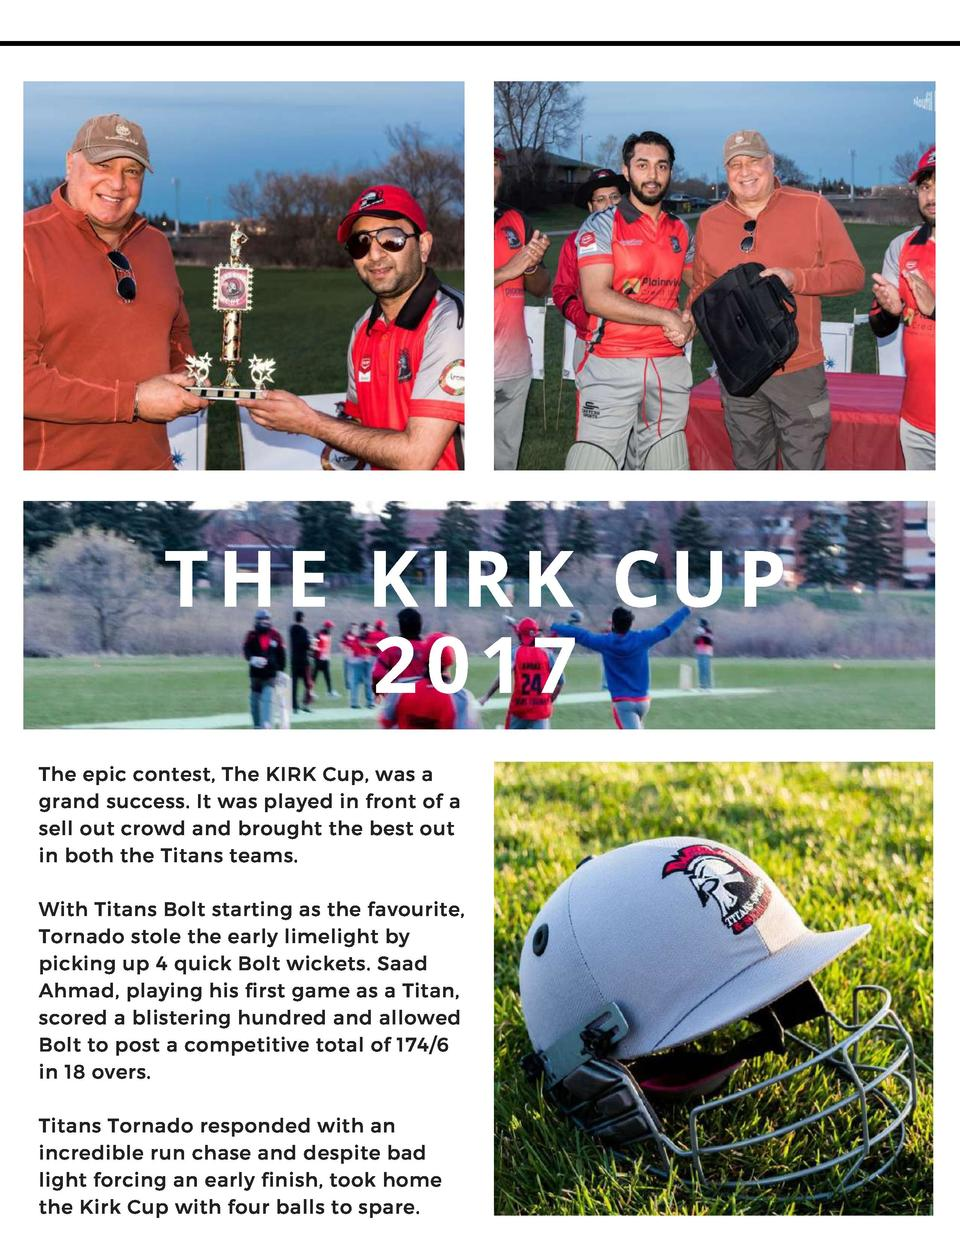 THE KIRK CUP 2017 The epic contest, The KIRK Cup, was a grand success. It was played in front of a sell out crowd and brou...